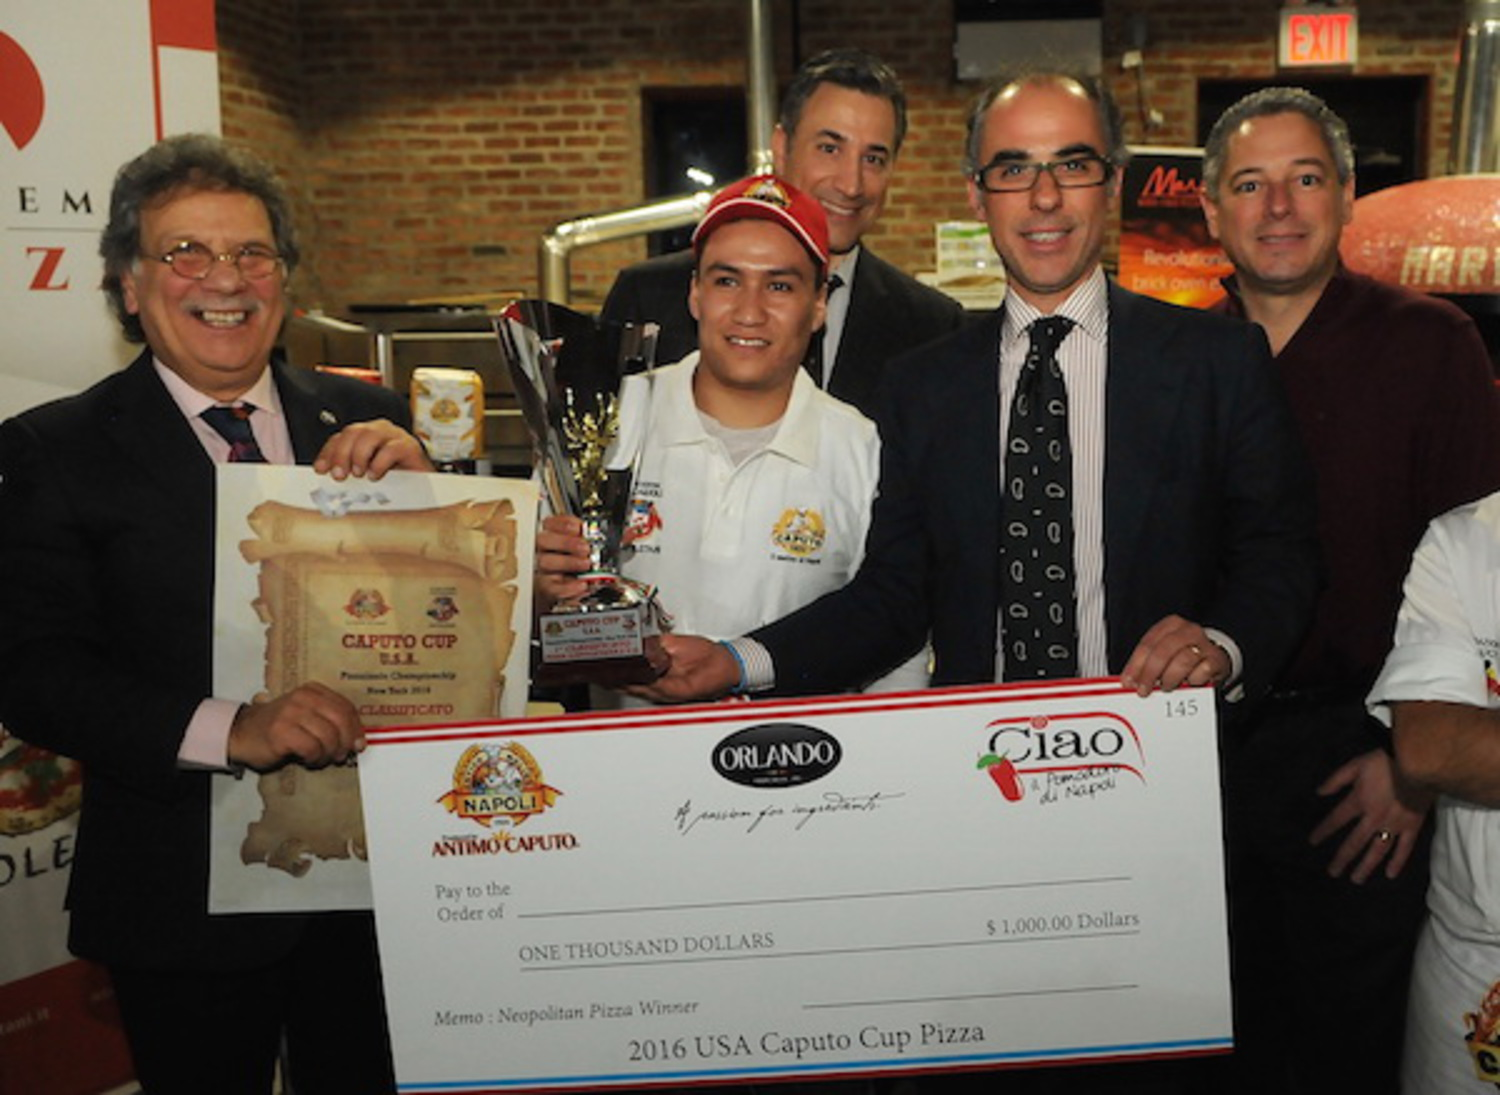 Jesus Solis — Forcella Brooklyn. 1st Place Neapolitan Style — USA Caputo Cup 2016